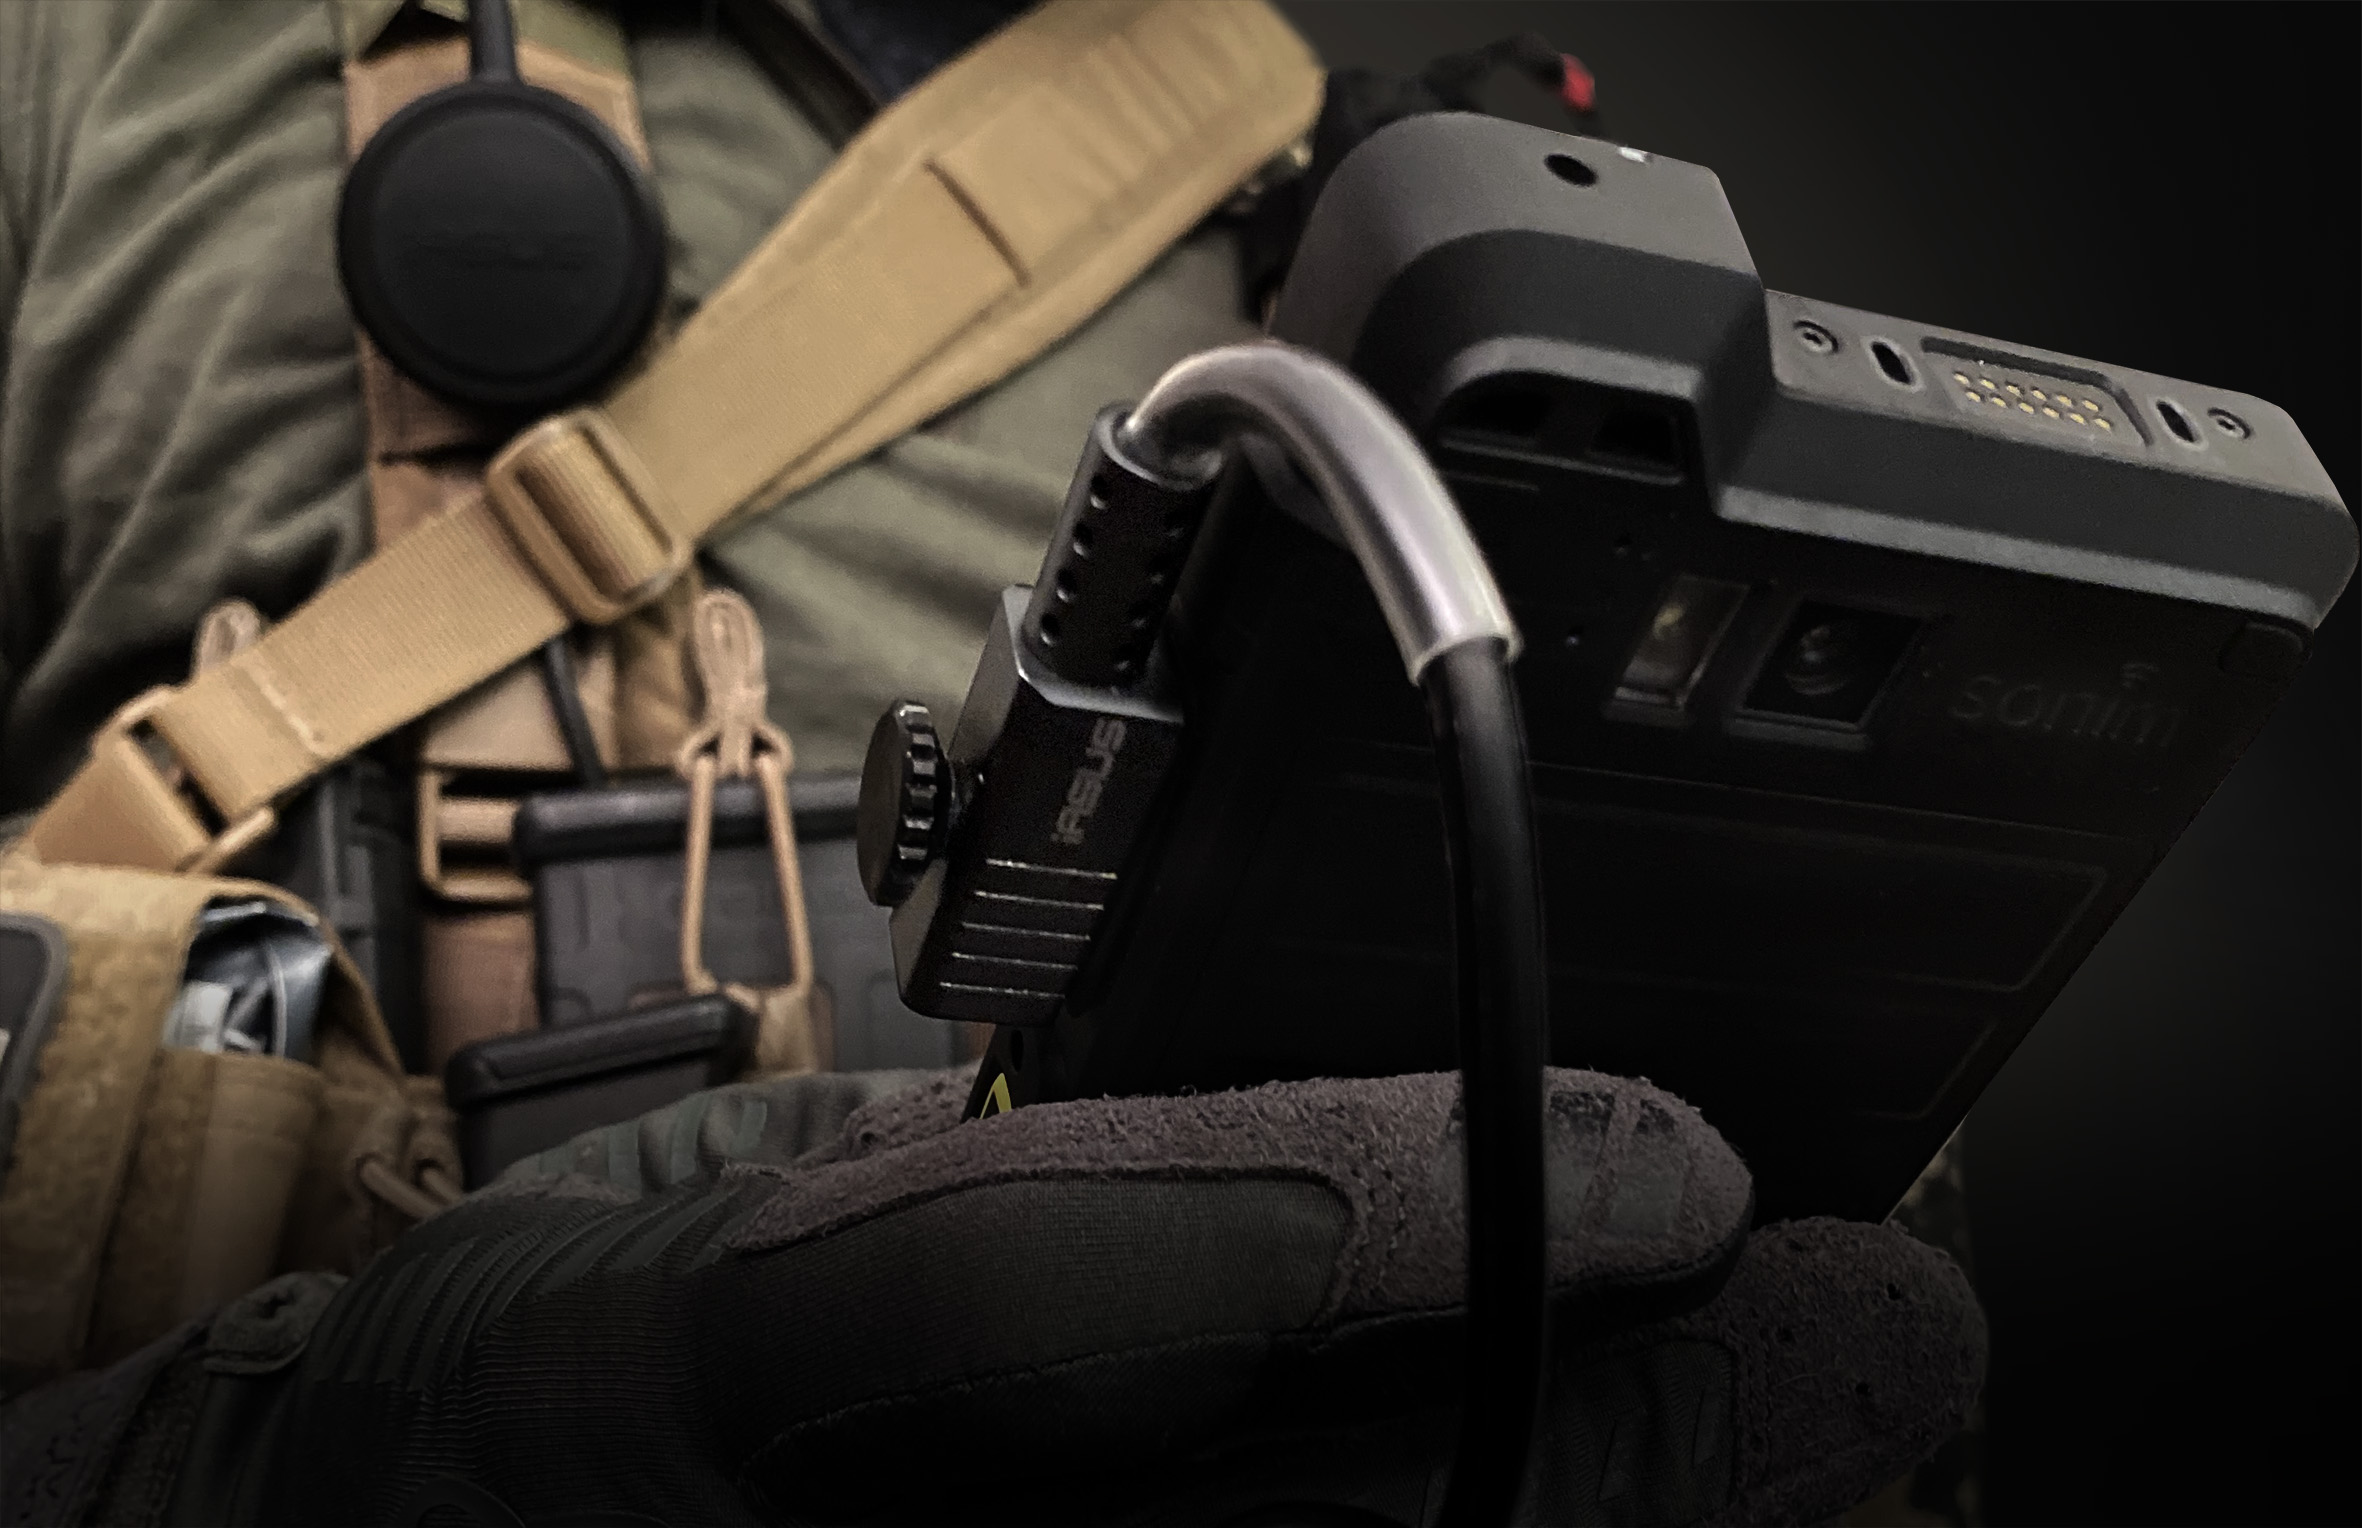 Customizable, Wireless, and Wired Throat Microphones for XP8 and XP5s